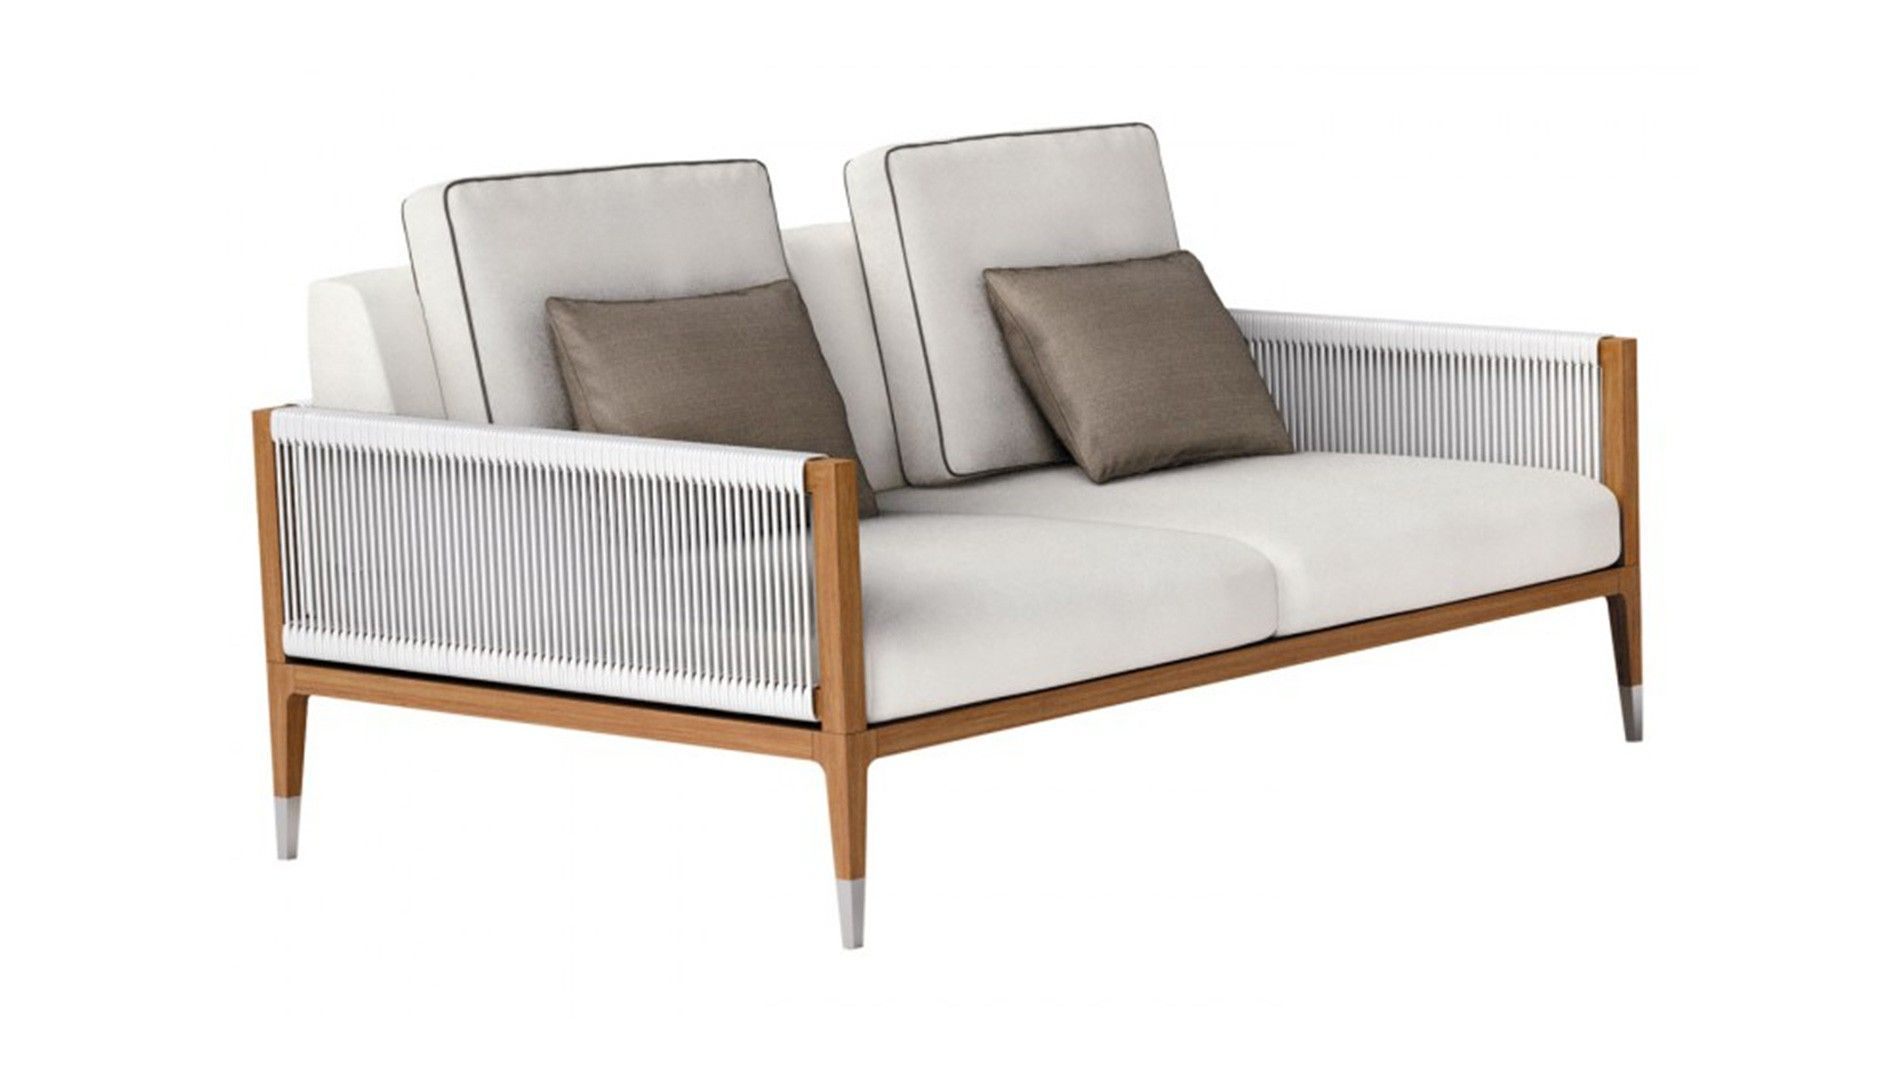 Buy Smania Amalfi 2 Seater Outdoor Sofa Online At Luxdeco Discover Luxury Collections From The World 39 S With Images Outdoor Sofa Outdoor Furniture Design Furniture